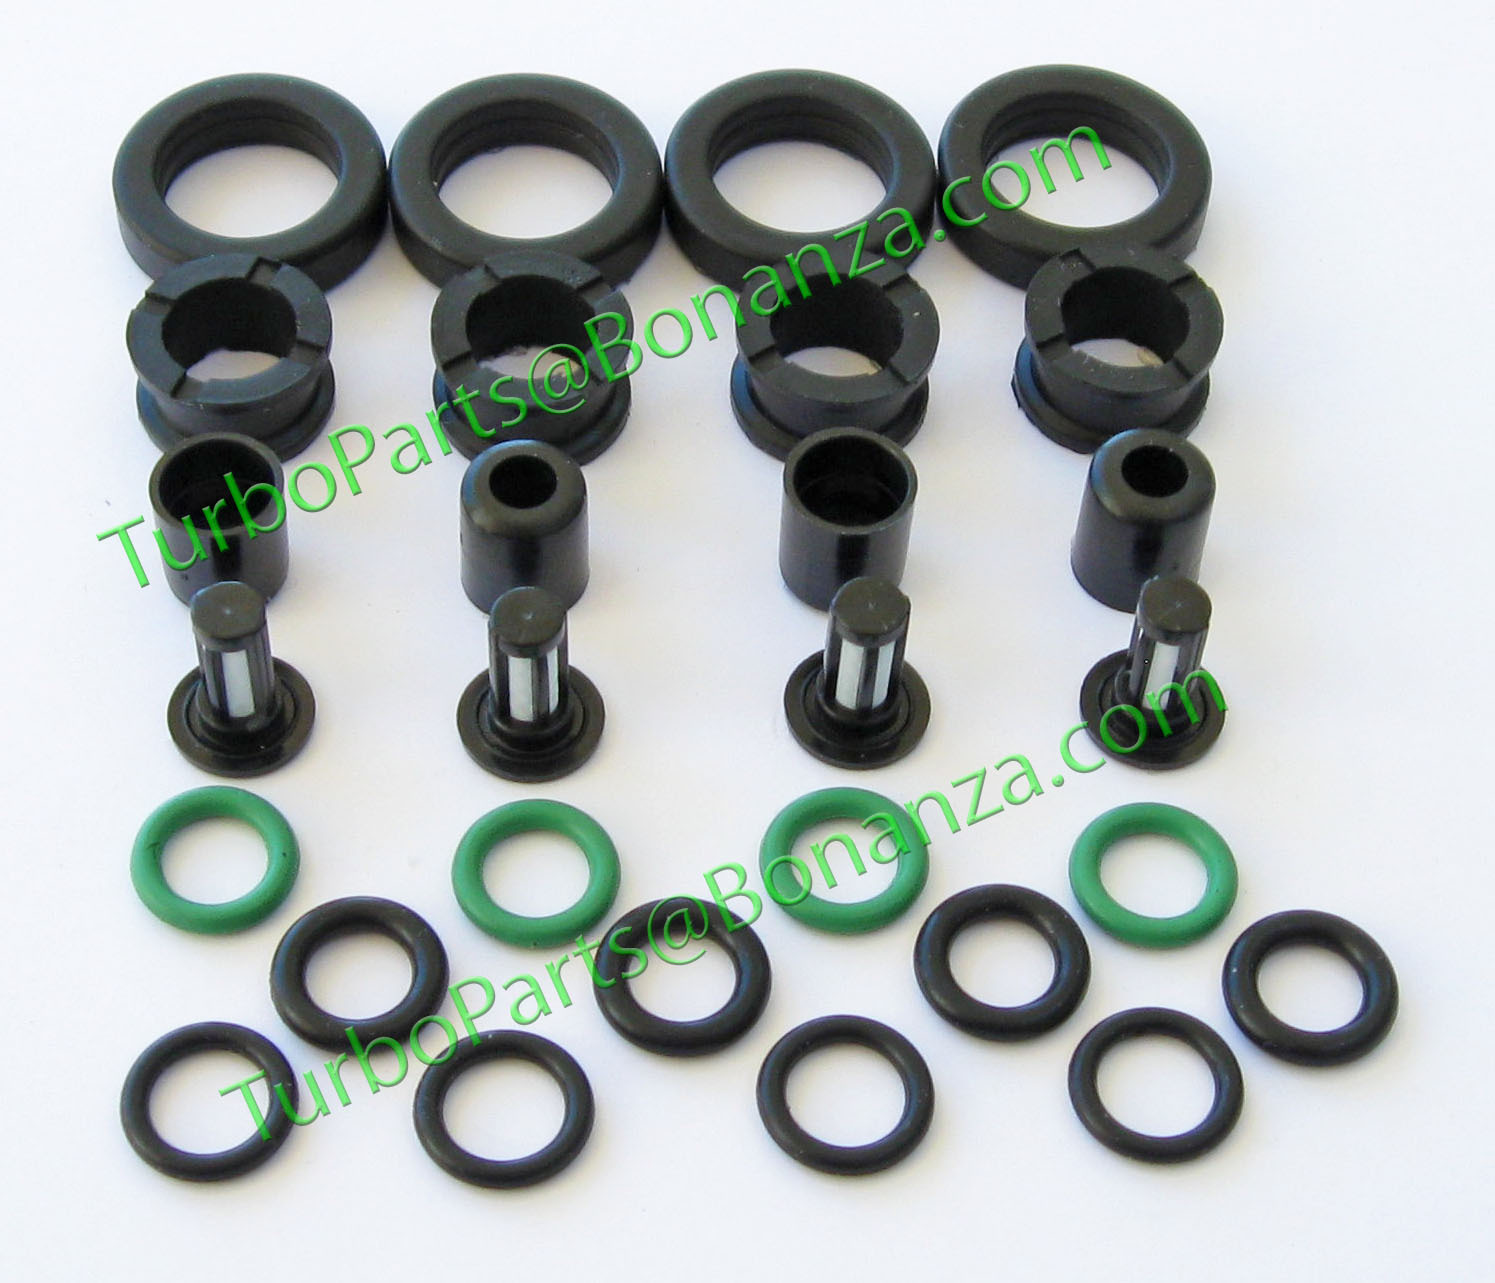 ... Honda Fuel Injector Parts O'rings Seals Grommets Filter Baskets Accord  Acura ...